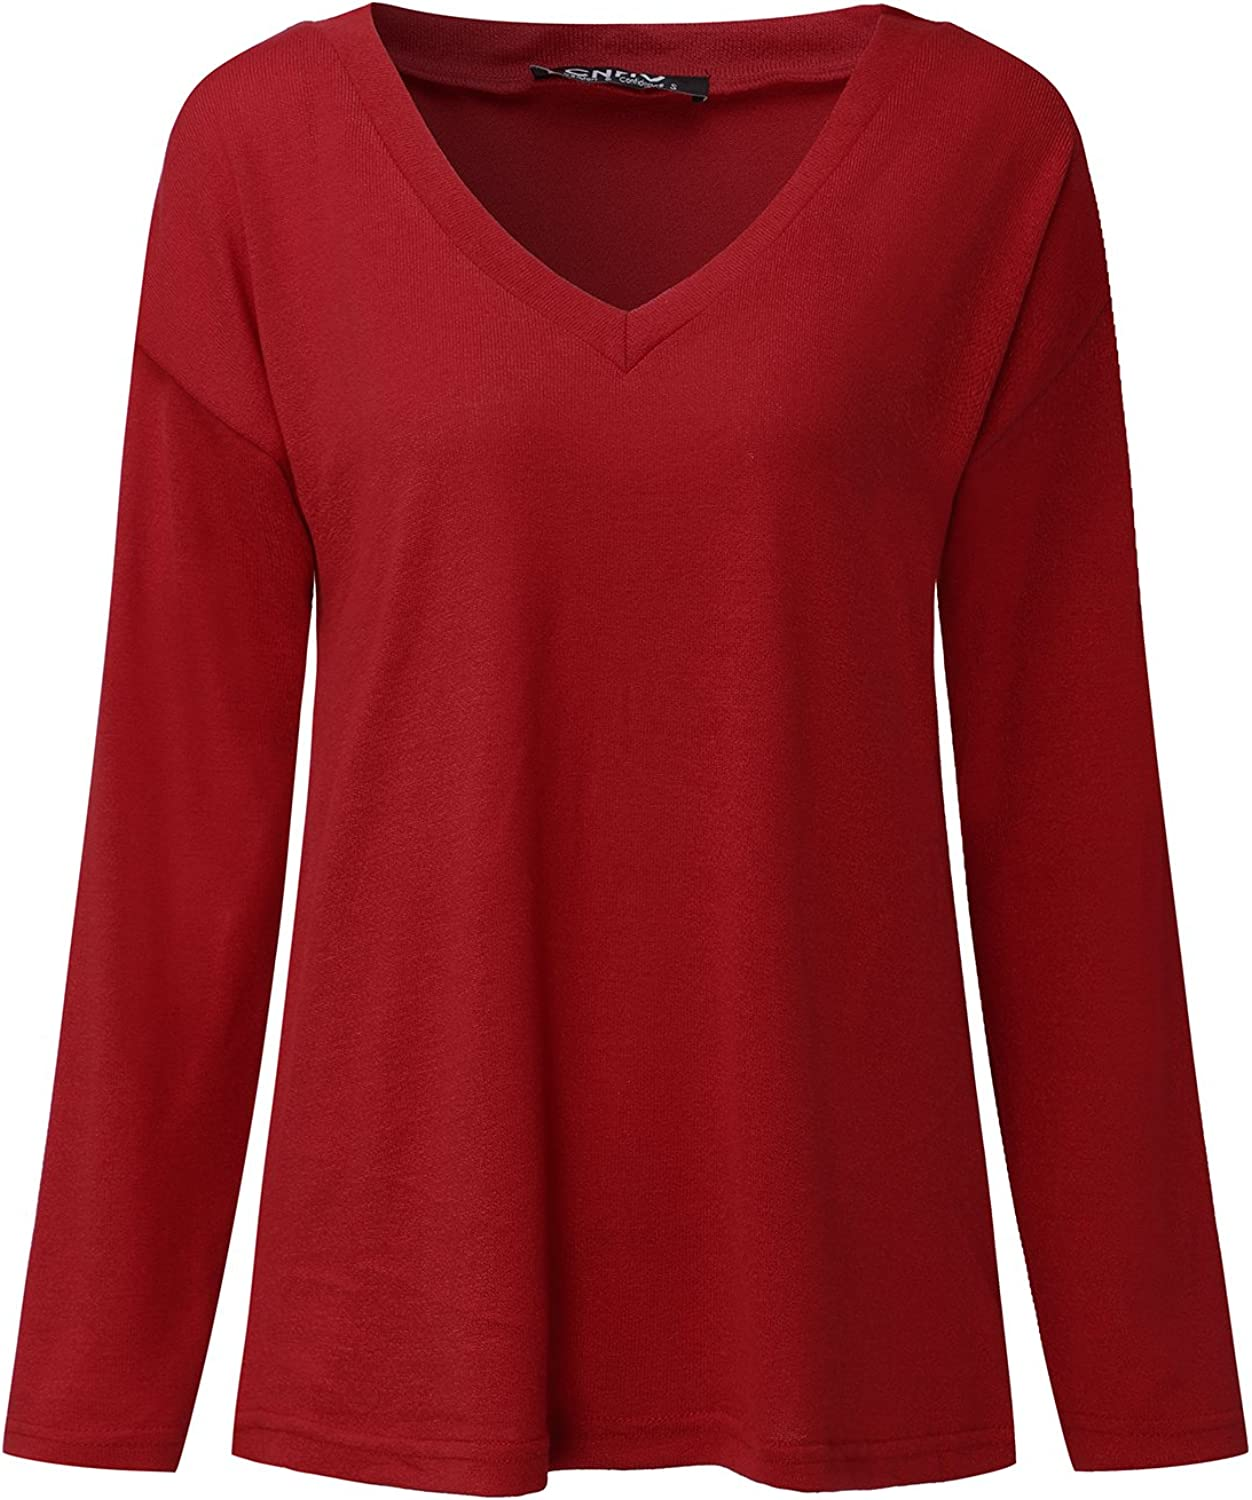 CNFIO Womens T Shirt Casual Short//Long Sleeve Crew Neck Tops Thin Knit Pullover Blouse Tees